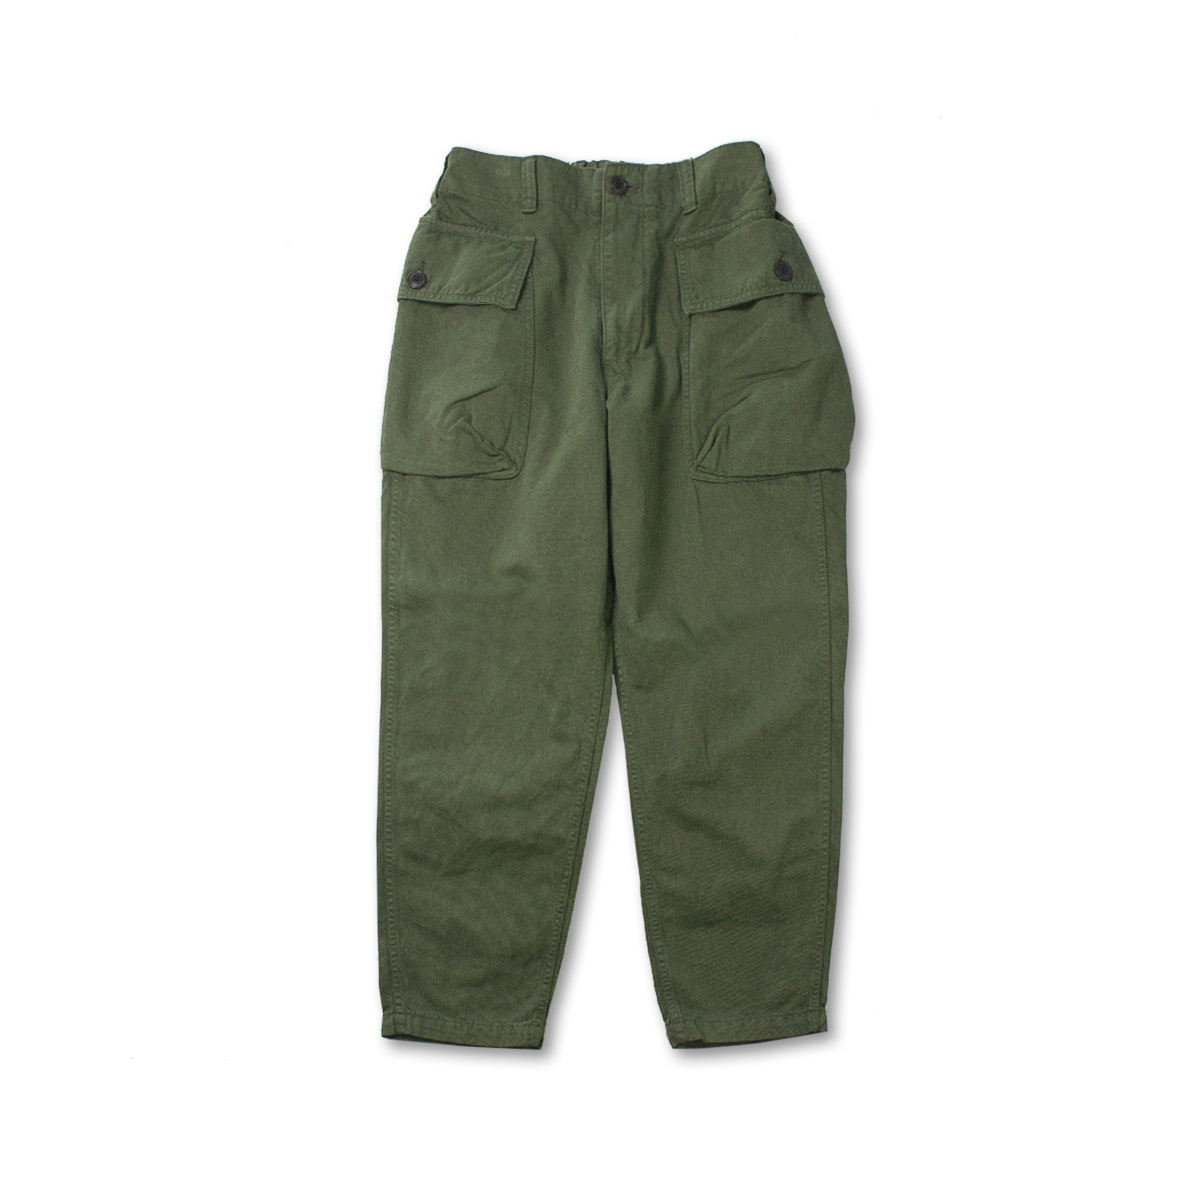 [SAGE DE CRET] MILITARY PANTS 'KHAKI'